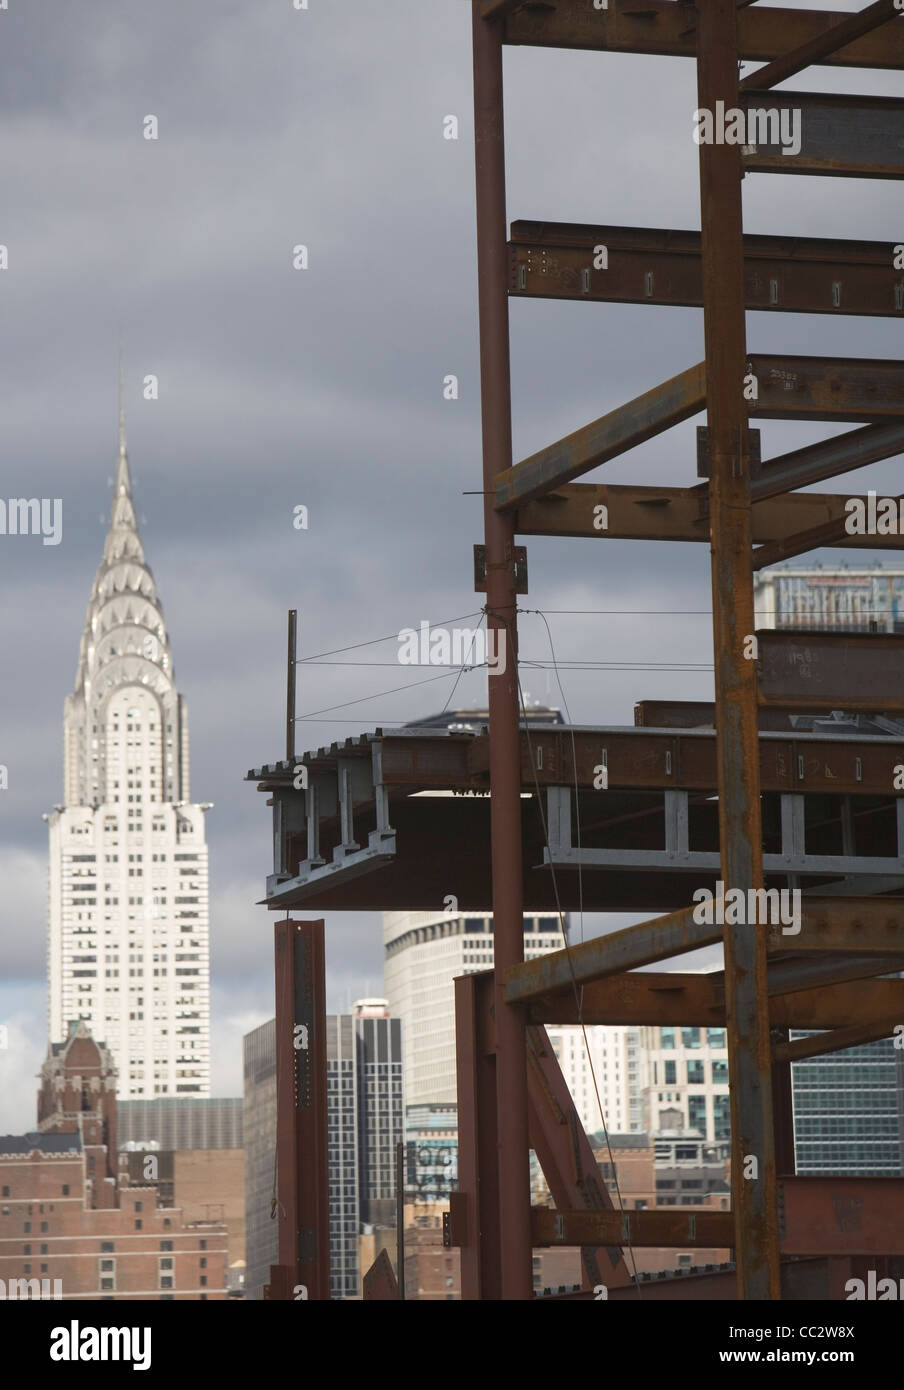 USA, New York State, New York City, Construction site and Chrysler building in background - Stock Image